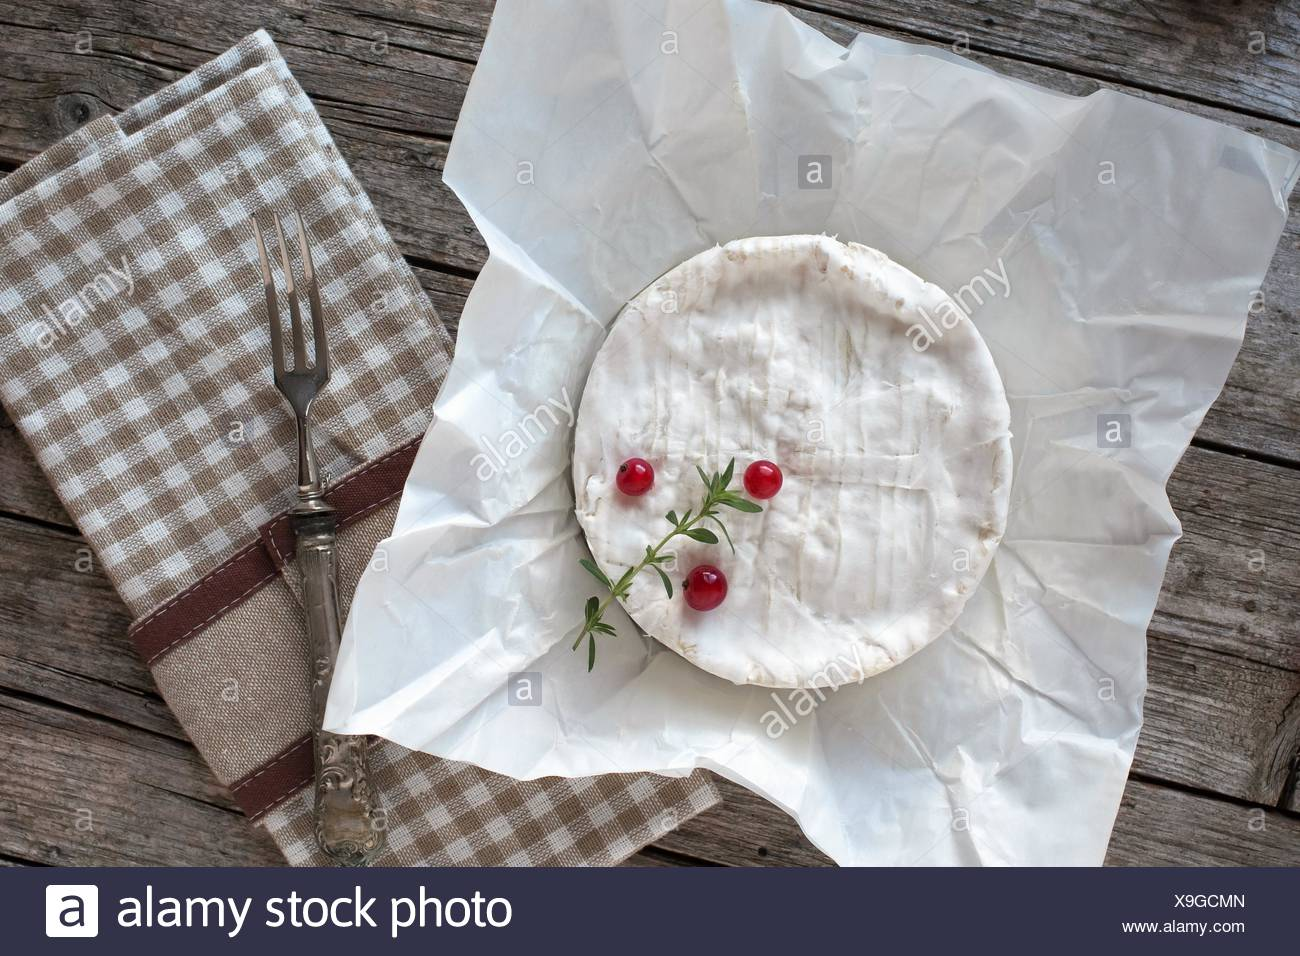 Camembert cheese on piece of paper, decorated with redcurrants and thyme. Stock Photo